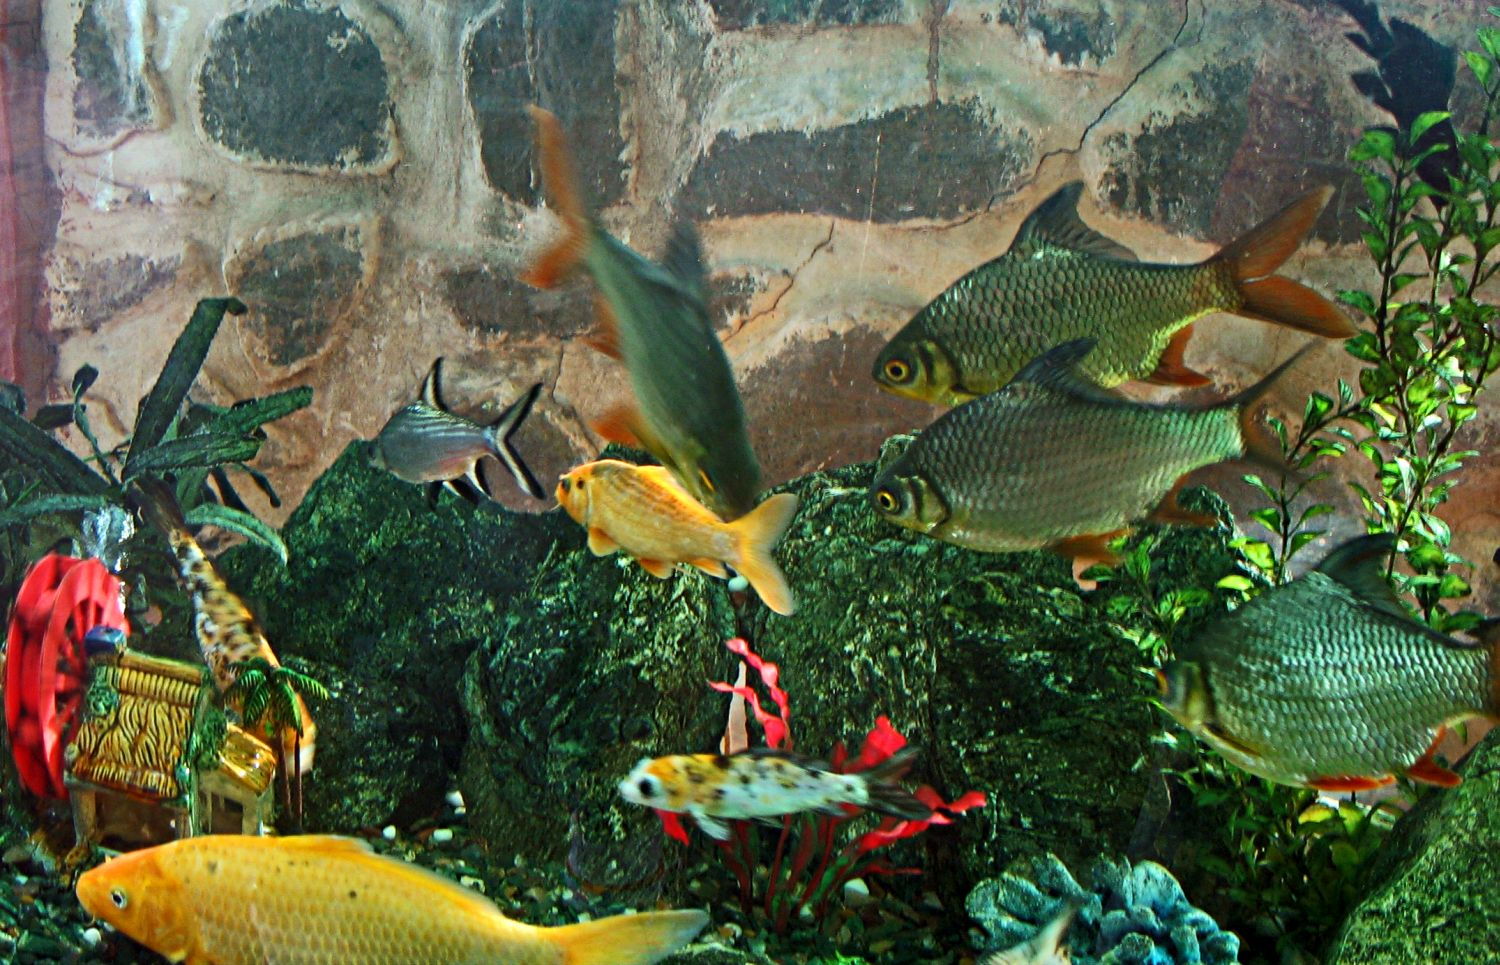 graphic about Printable Fish Tank Backgrounds referred to as Fish Tank Backgrounds Printable - High definition Desktop Wallpapers